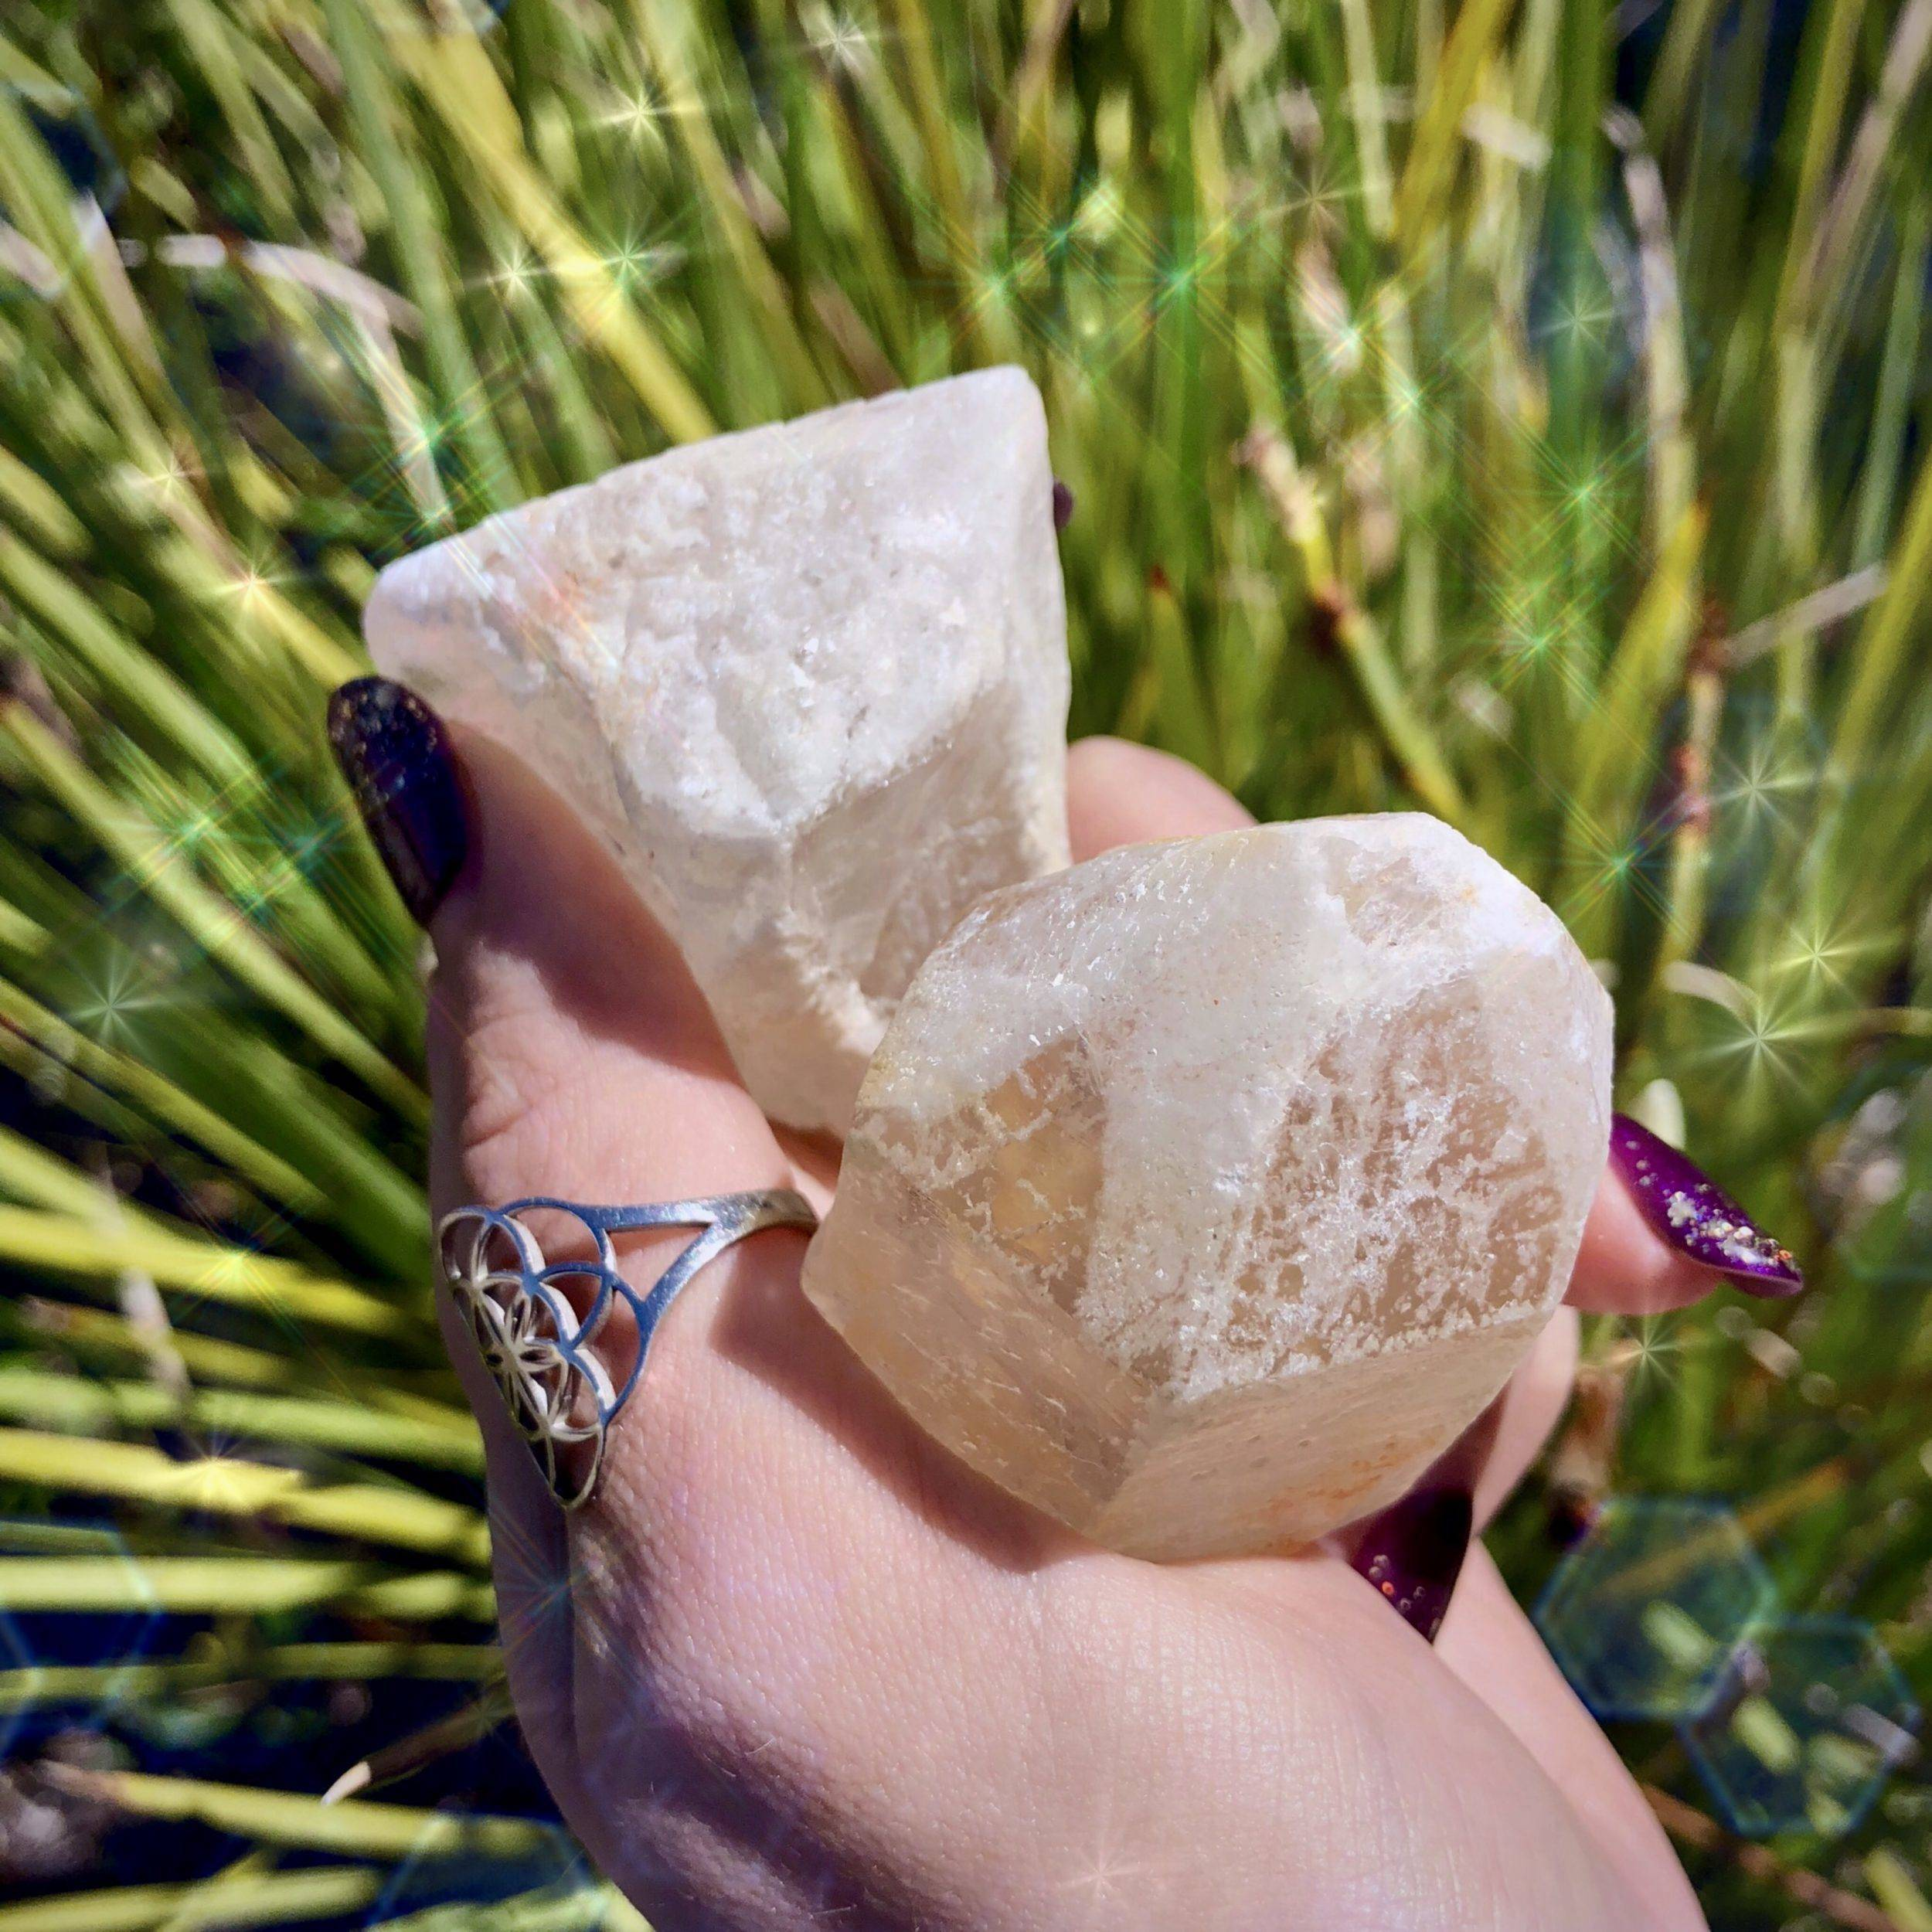 Denver_After_Dark_Dreamsicle_Lemurian_DD_Small_5of6_9_19